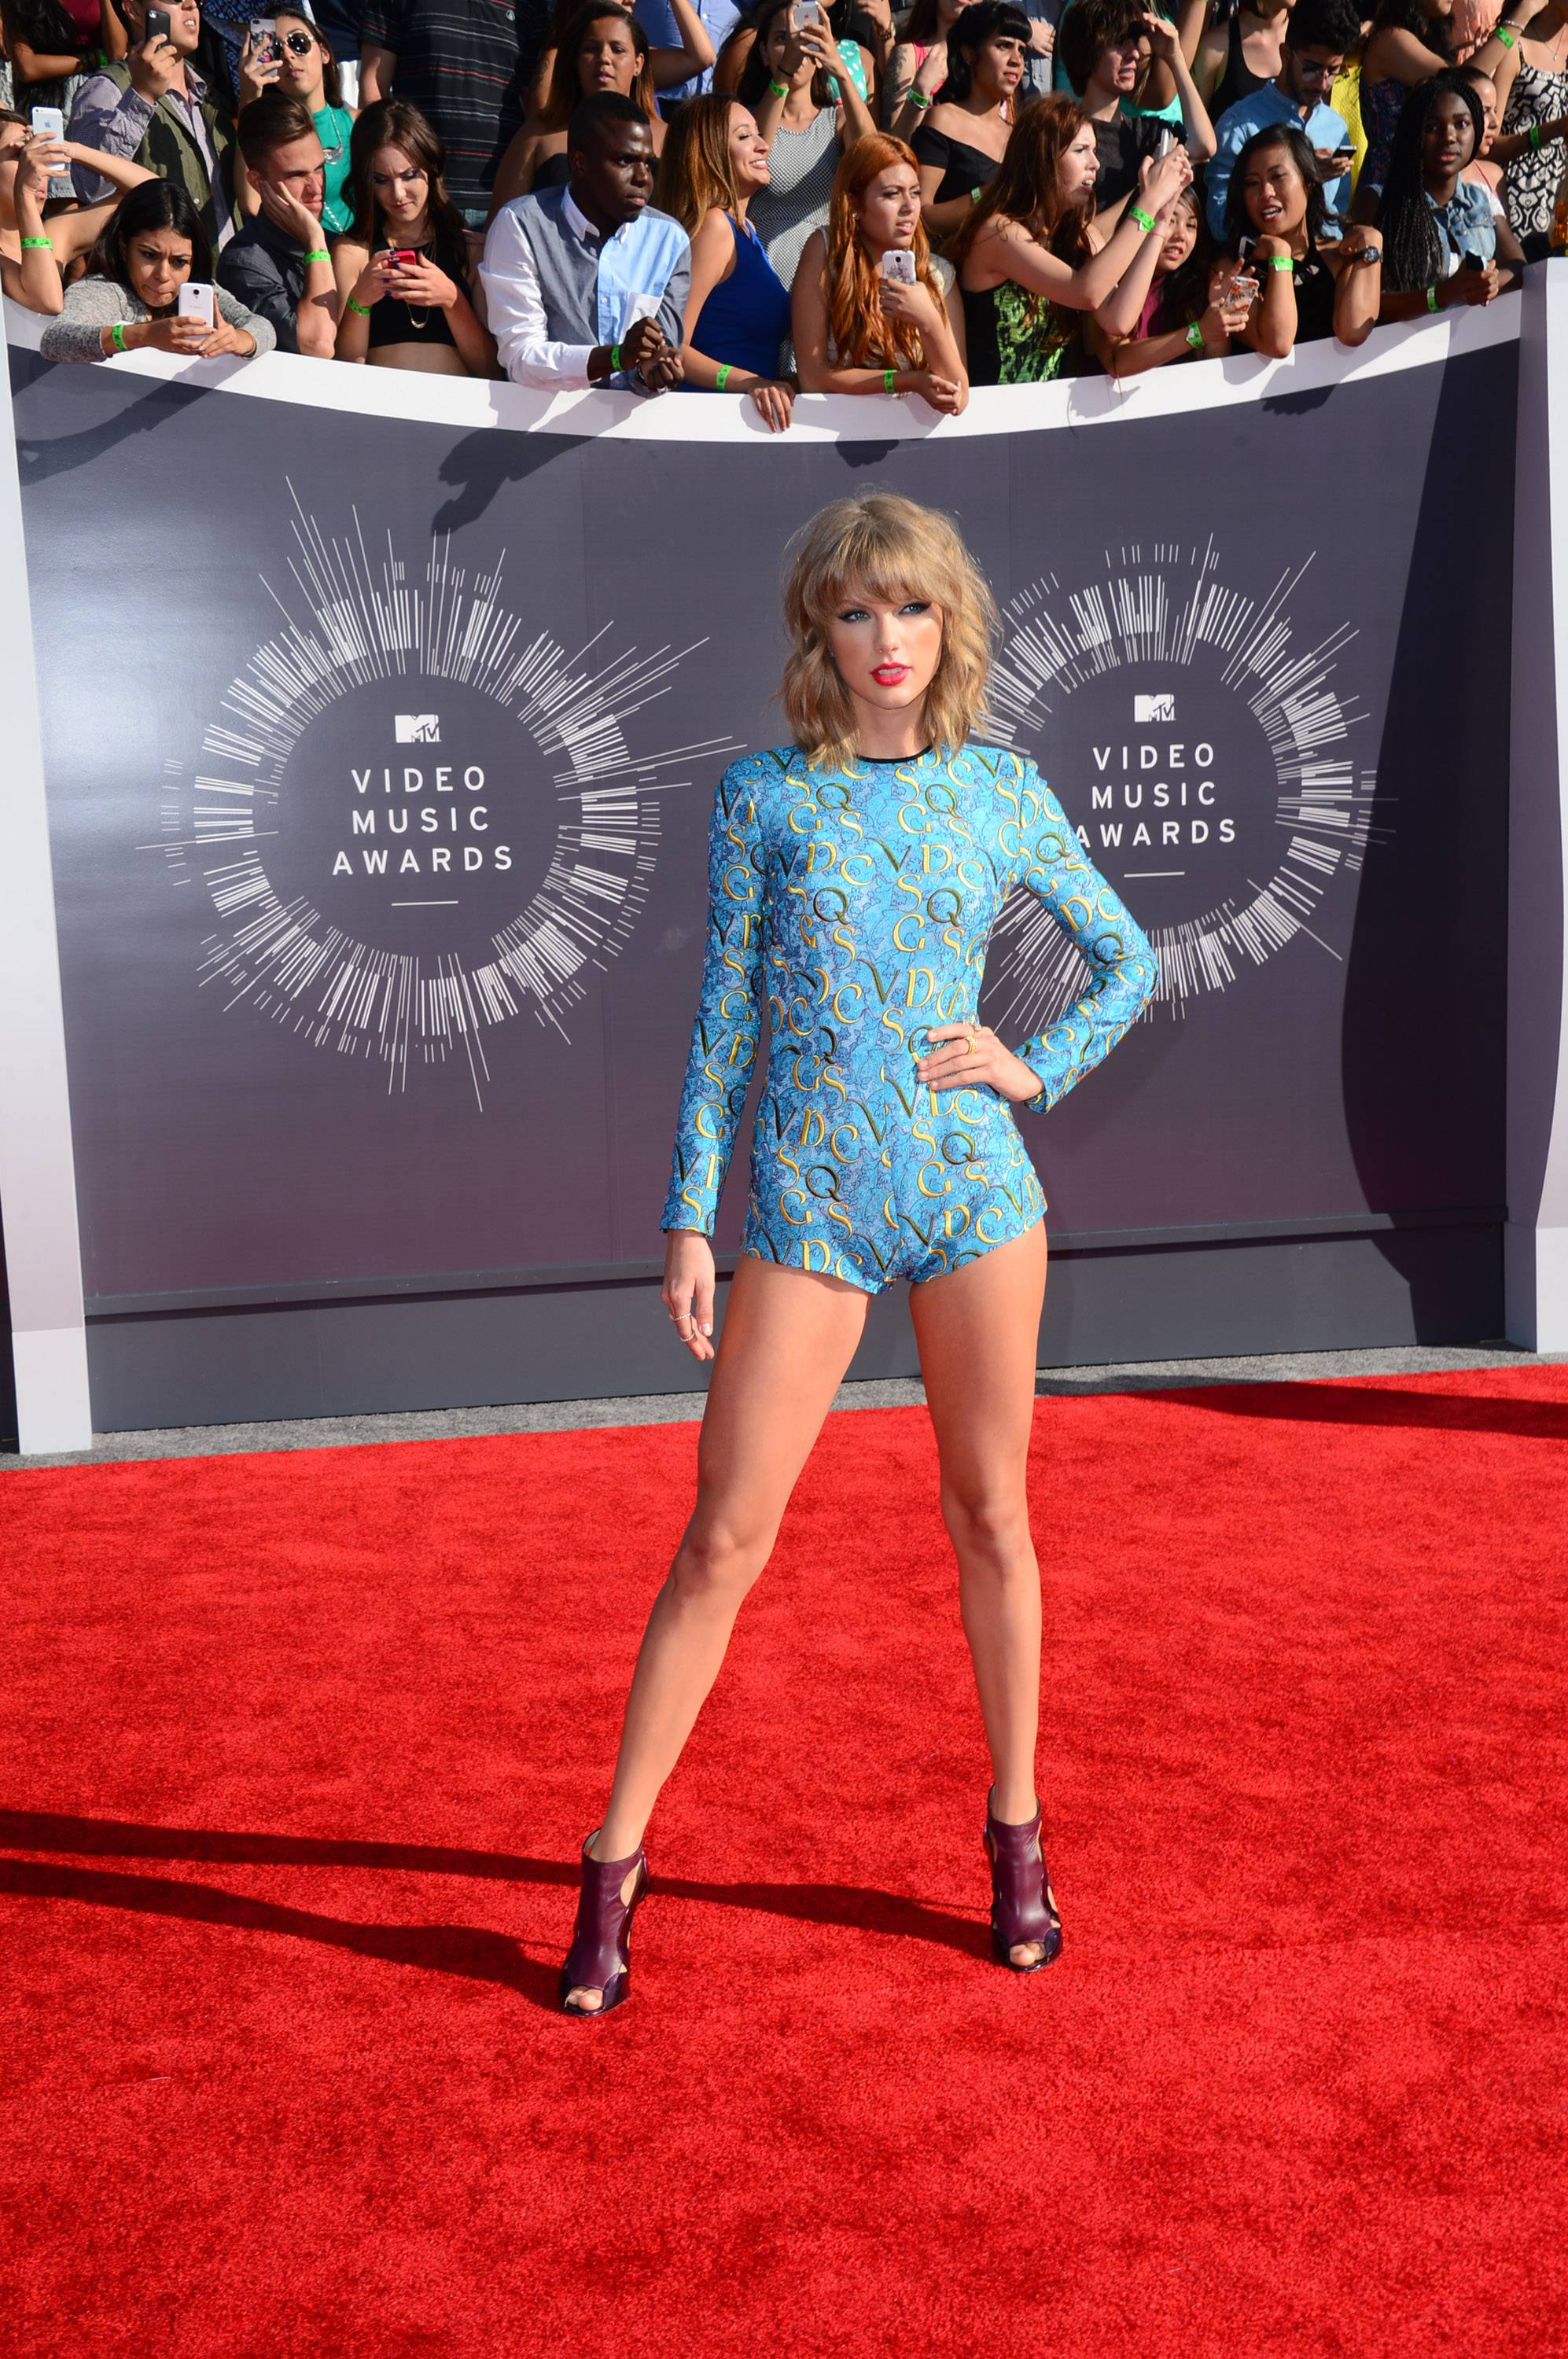 WORST: Oh, TayTay. This romper doesn't even fit the usually stunning Taylor Swift.